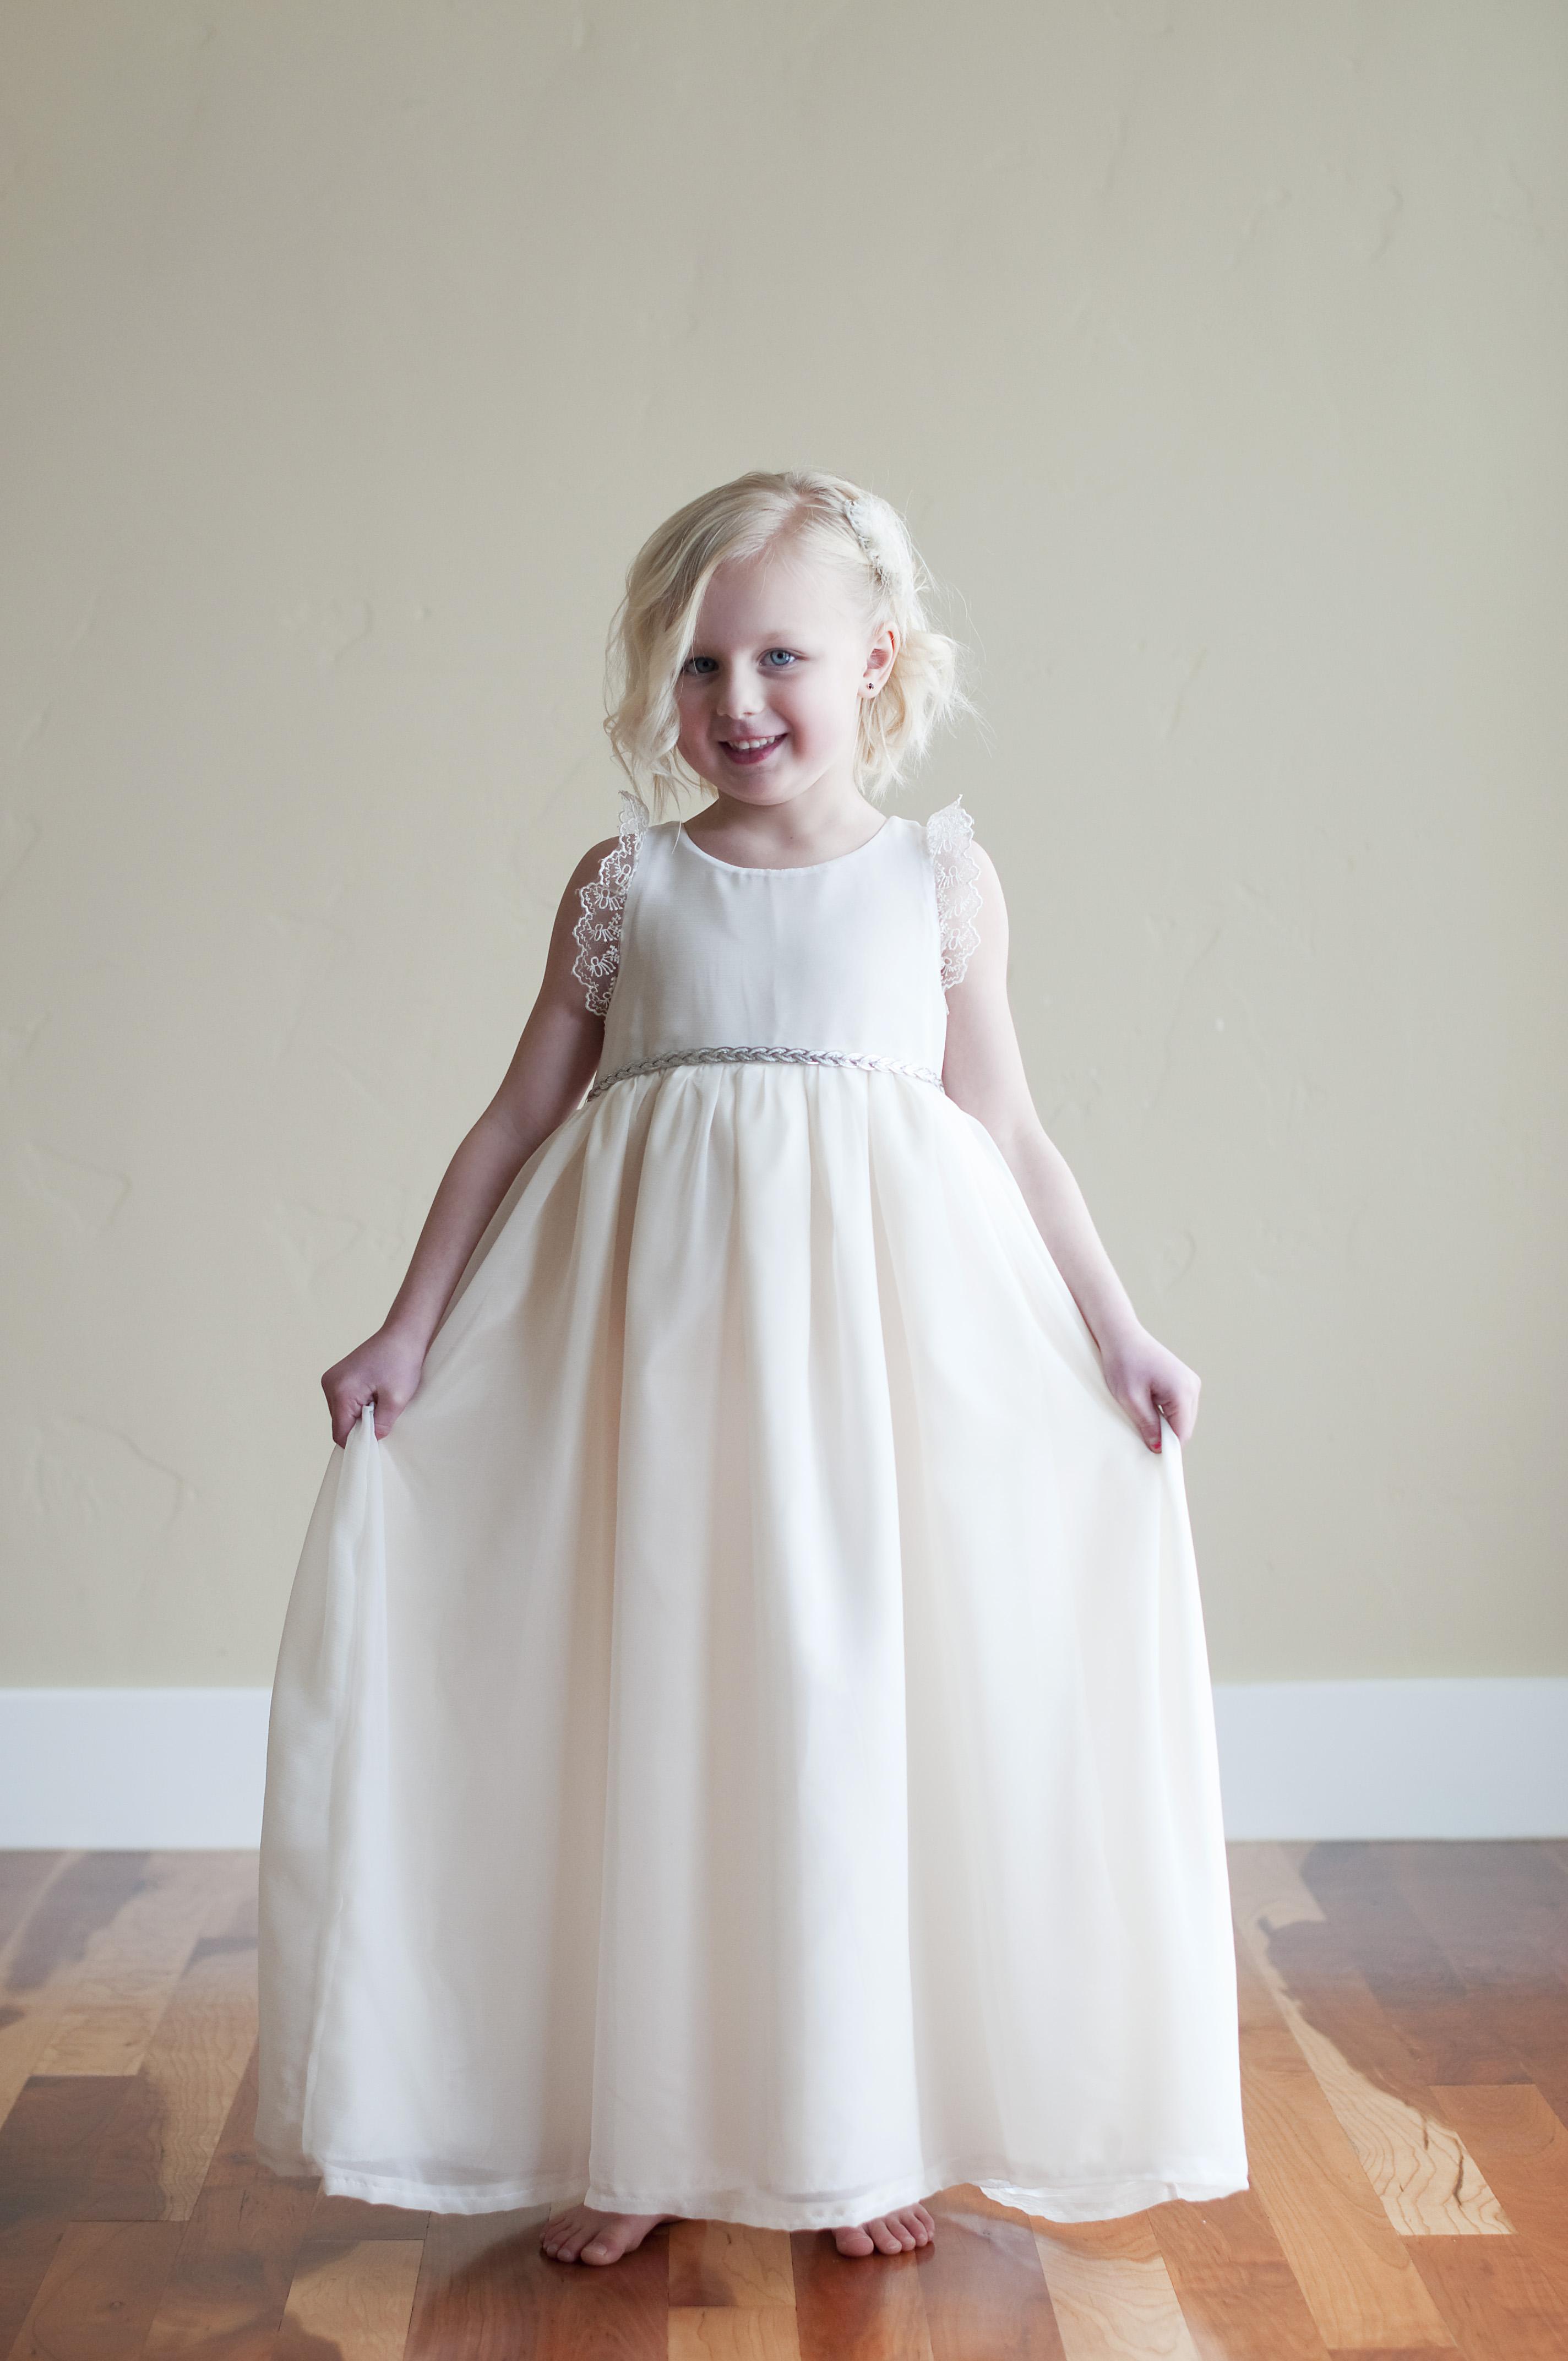 462eae0f0a The Selene Chiffon Flower Girl Dress is a beautiful light flower girl dress  available in ivory and white with brocade trim.